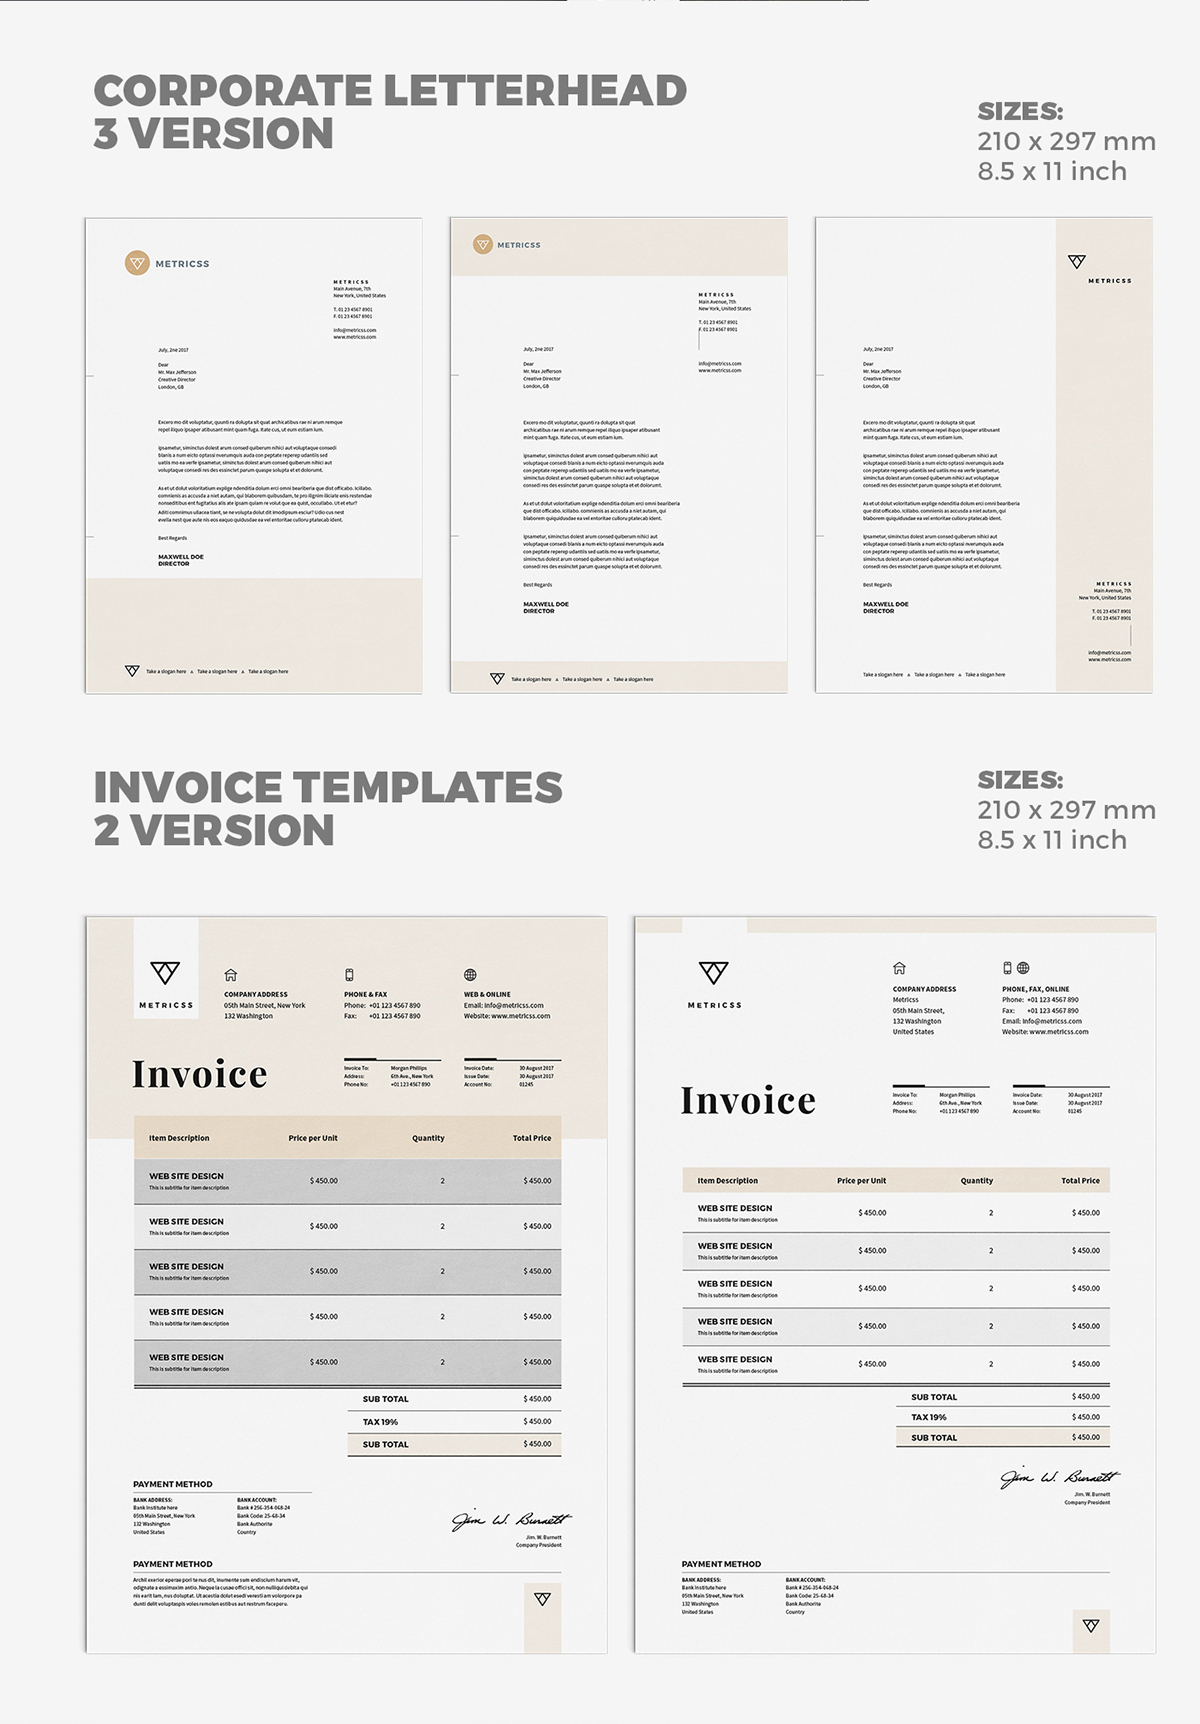 architect art buildings business construction Corporate Identity creative cultural design drawings graphic industrial Stationery templates